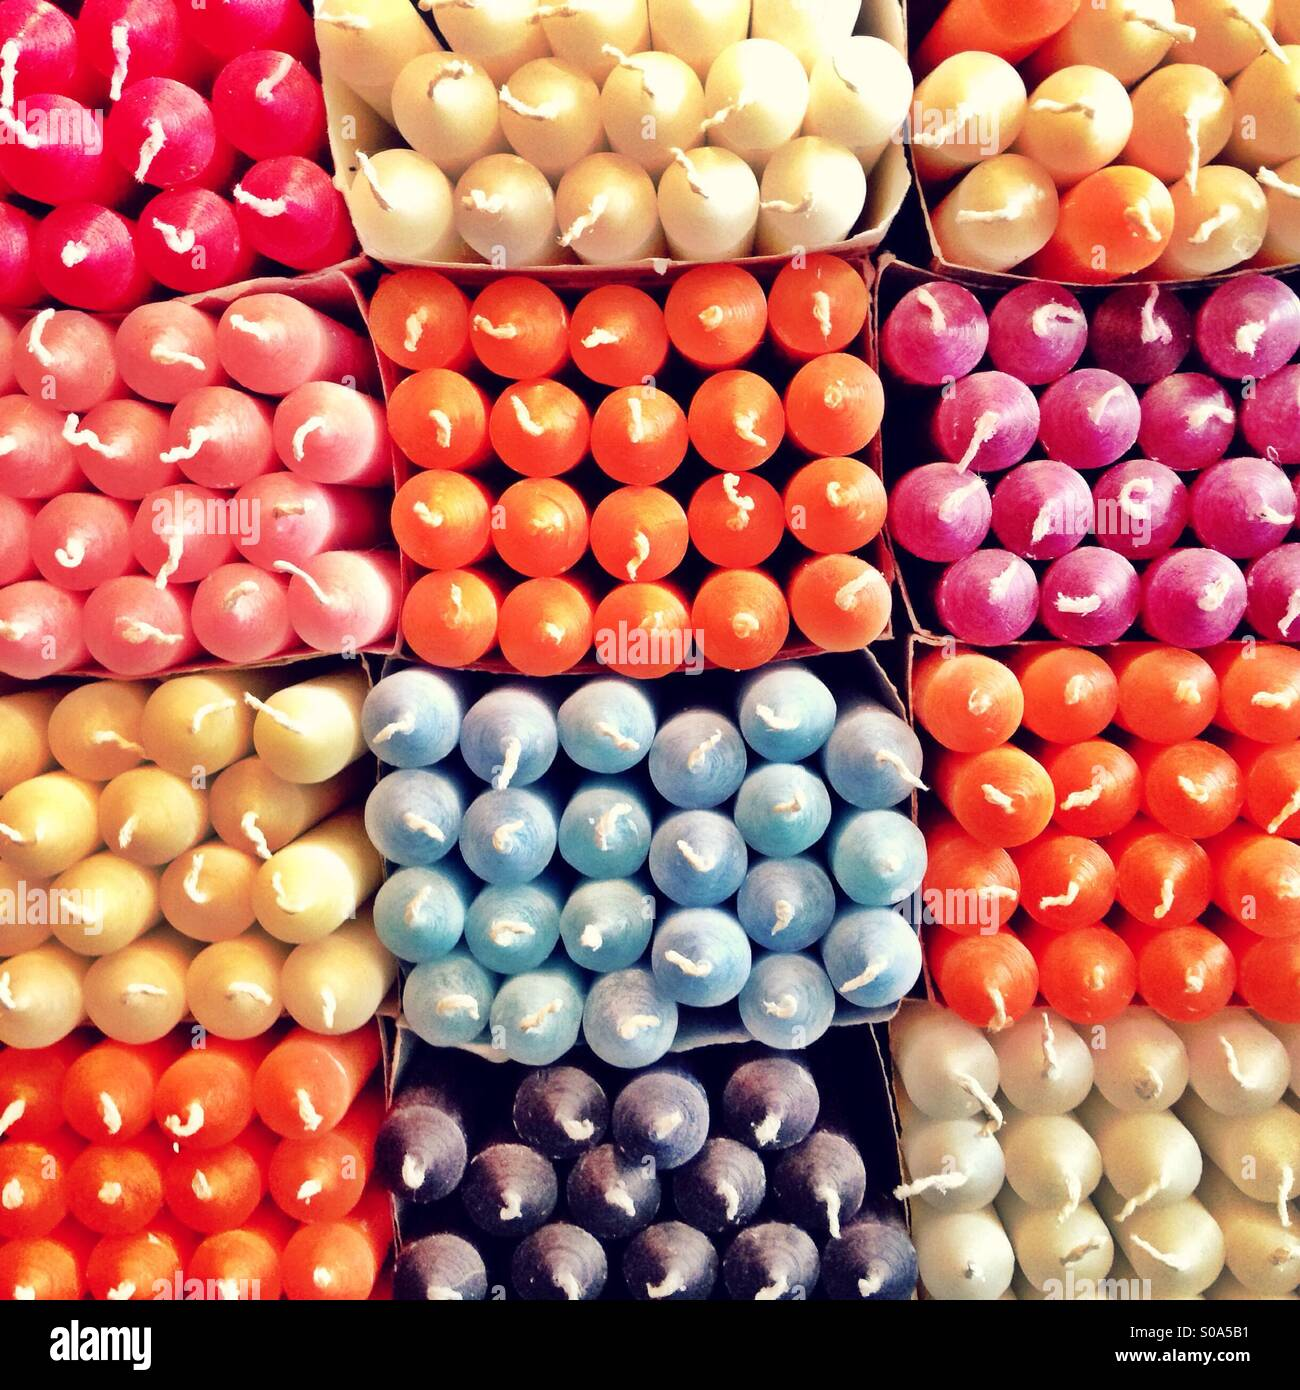 Shop Display of Candles - Stock Image